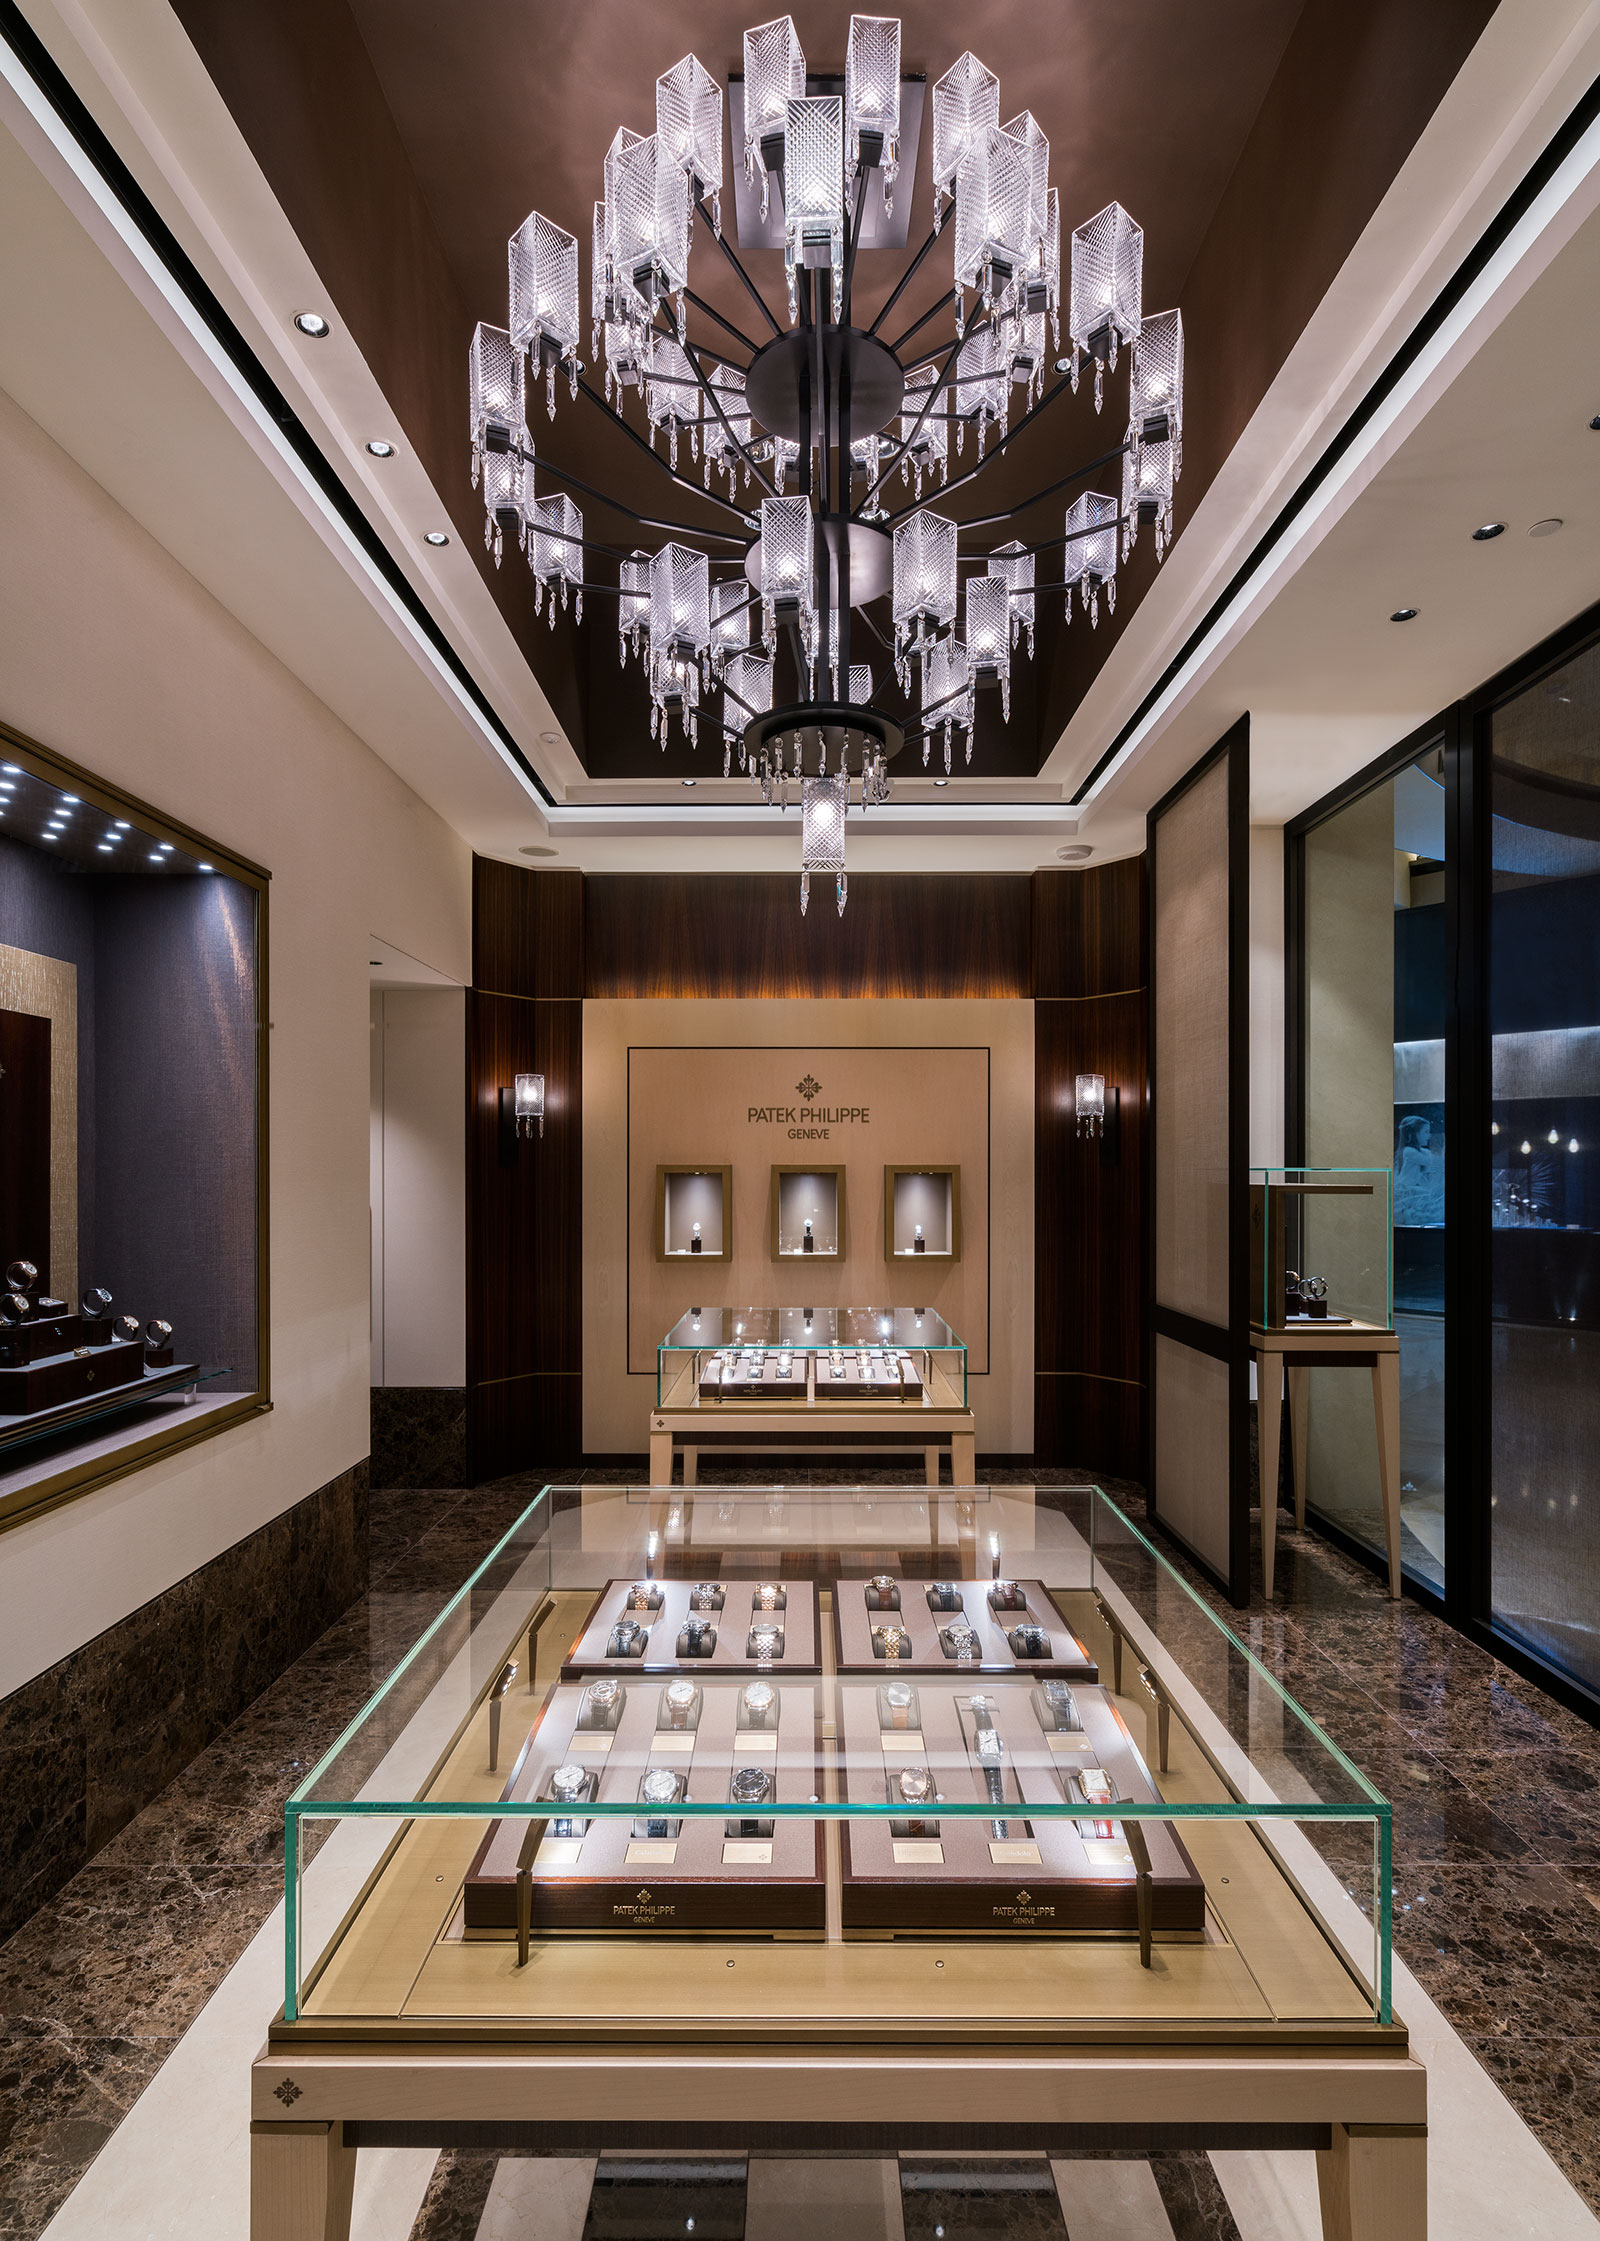 The newly reopened Patek Philippe boutique at Marina Bay Sands in Singapore